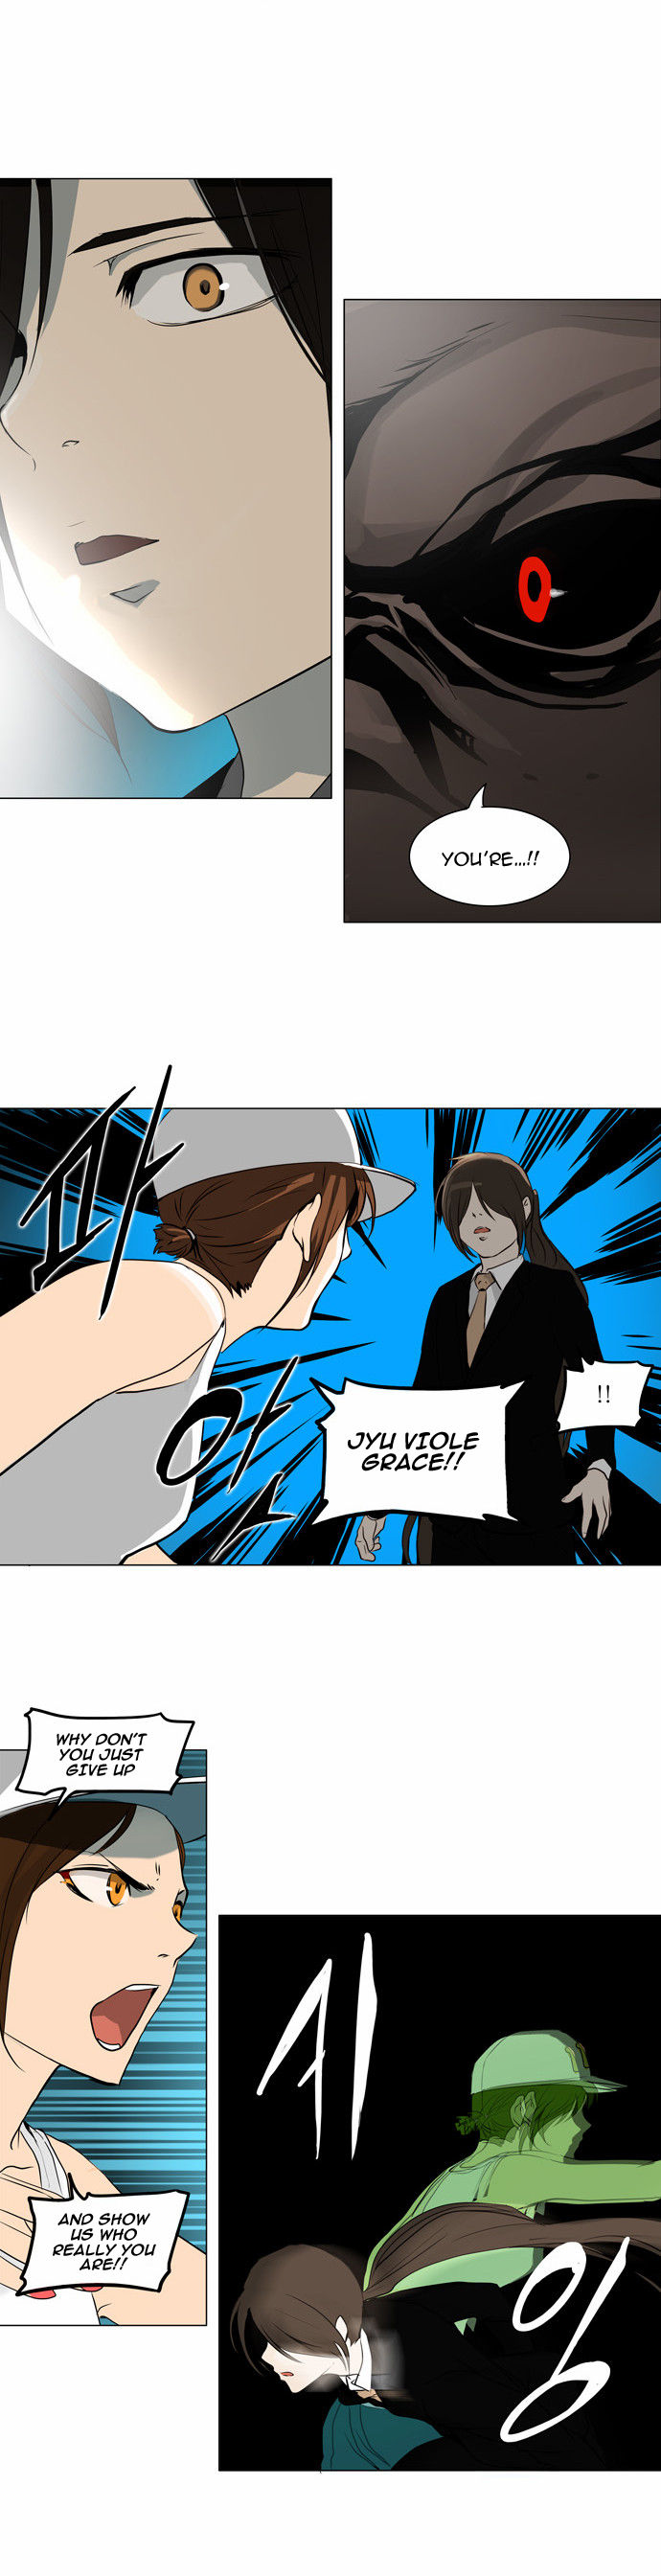 Tower of God 160 Page 2